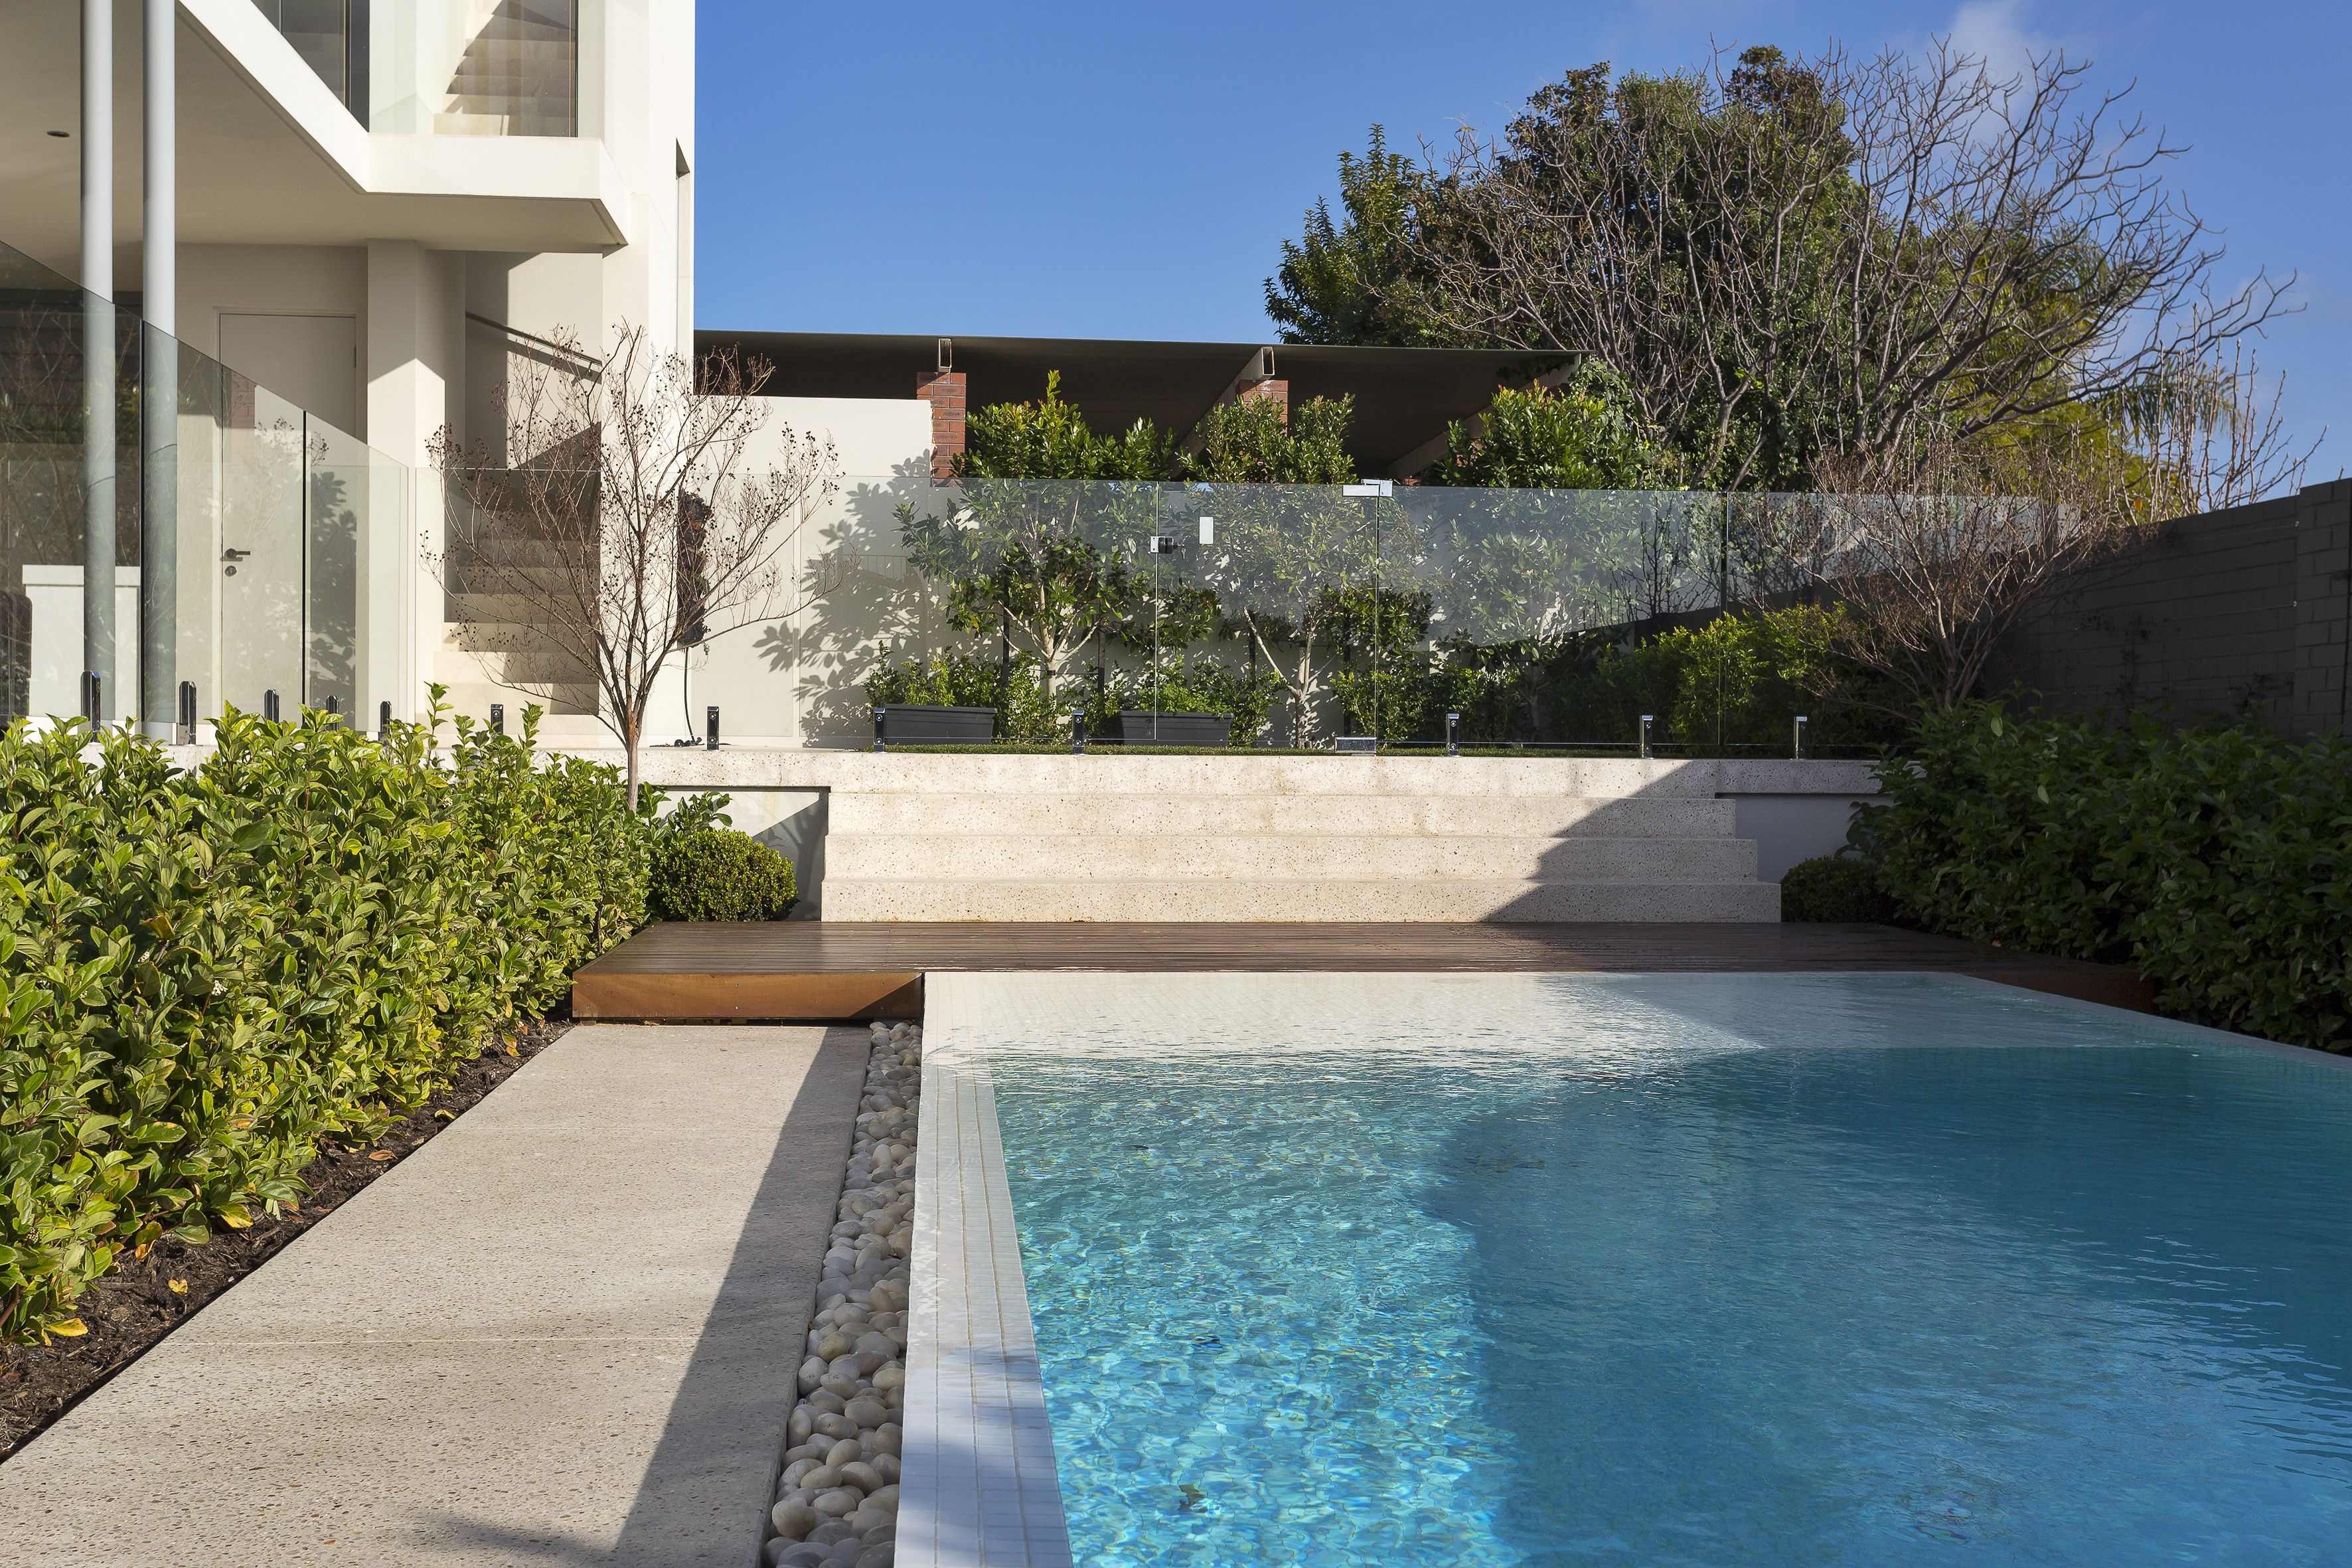 residential infinity pools. Infinity Pool, Tiled Pebble Edging, Glass Fence. Residential Pools A